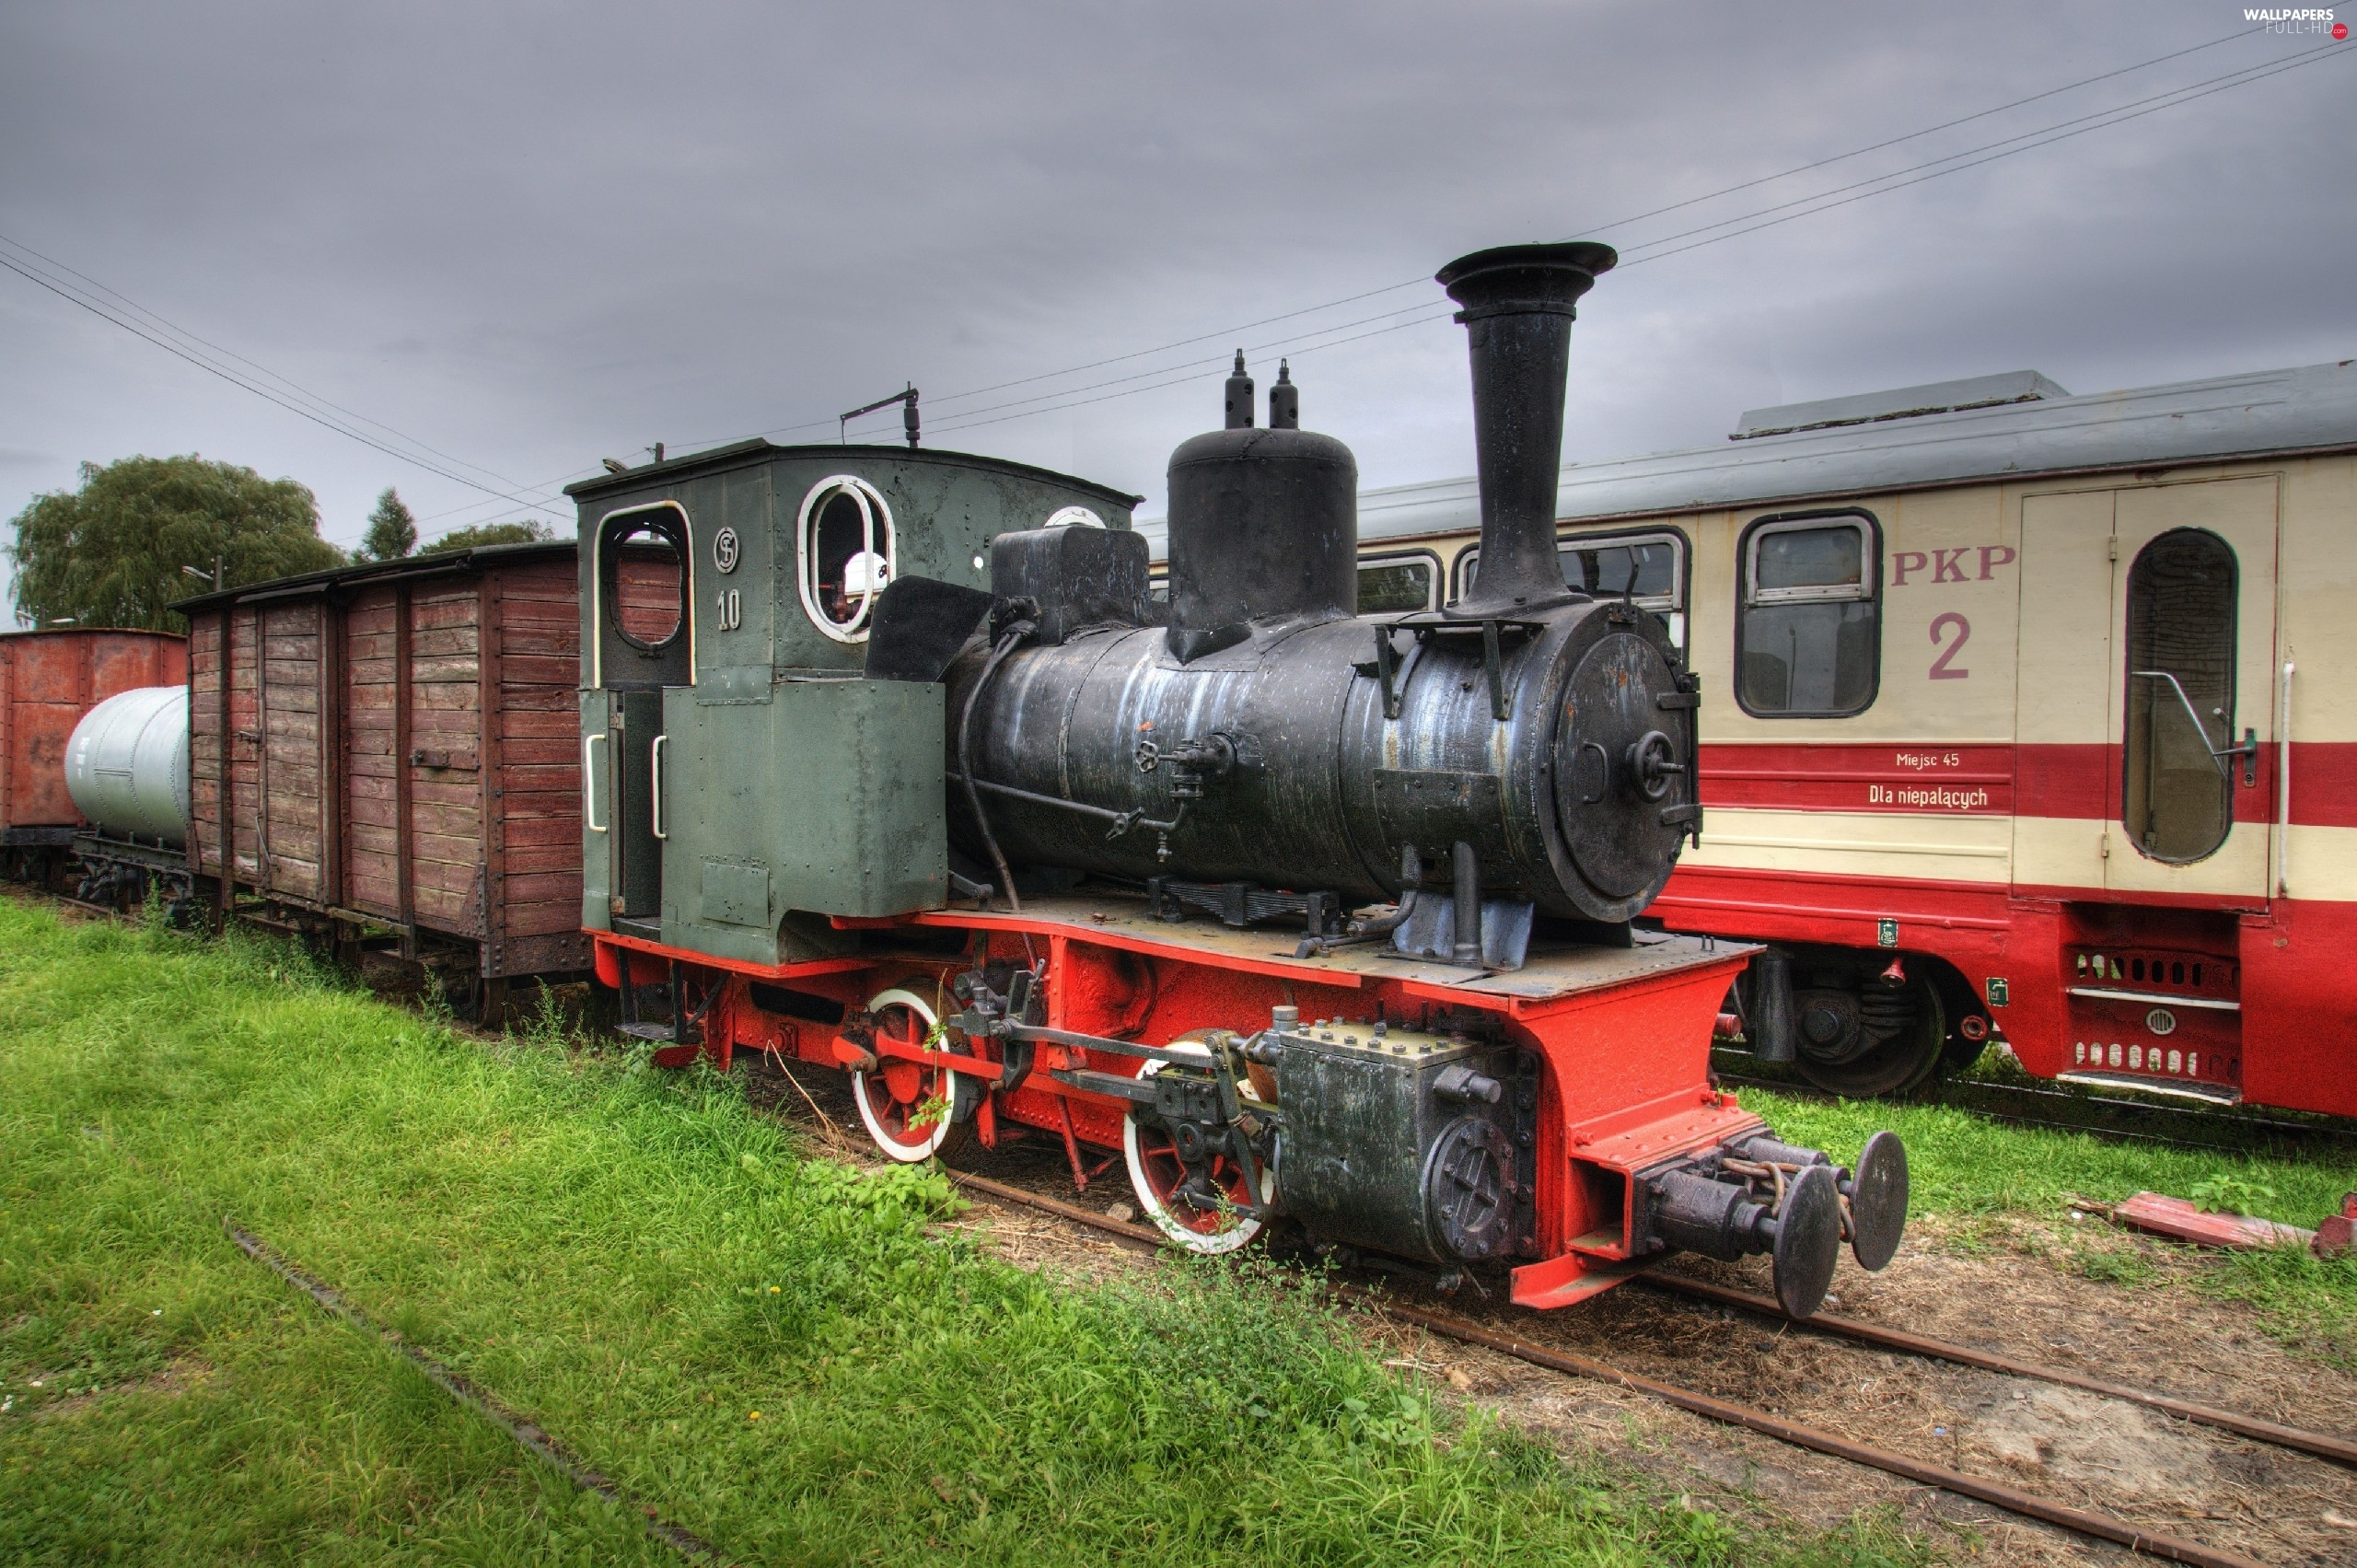 Narrow Gauge, locomotive